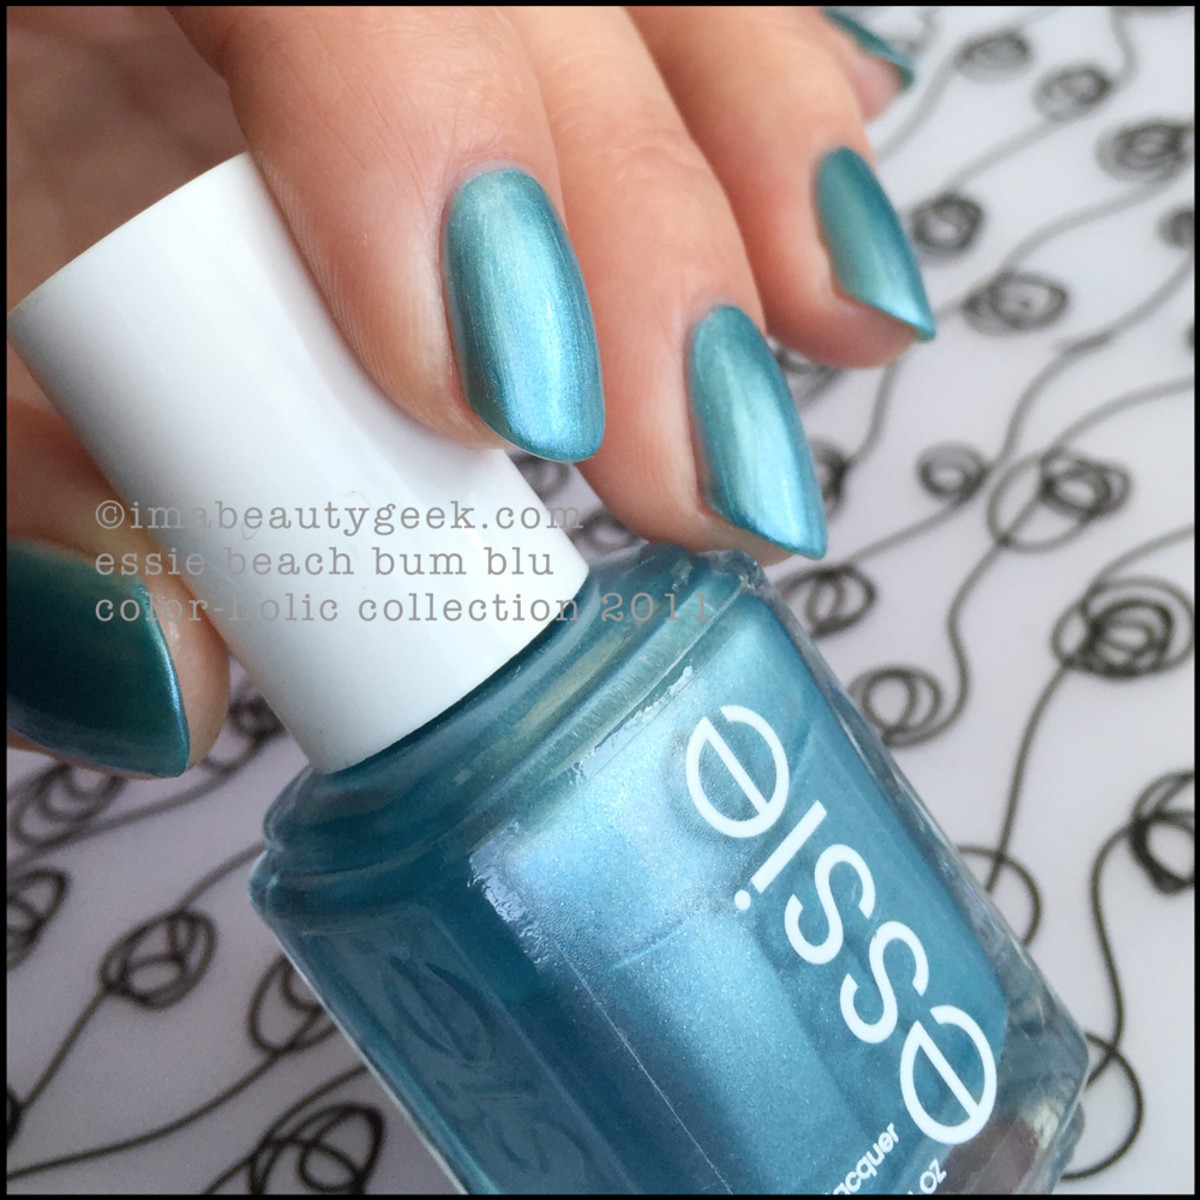 Essie Beach Bum Blue 2011 ColorHolic Collection Beautygeeks